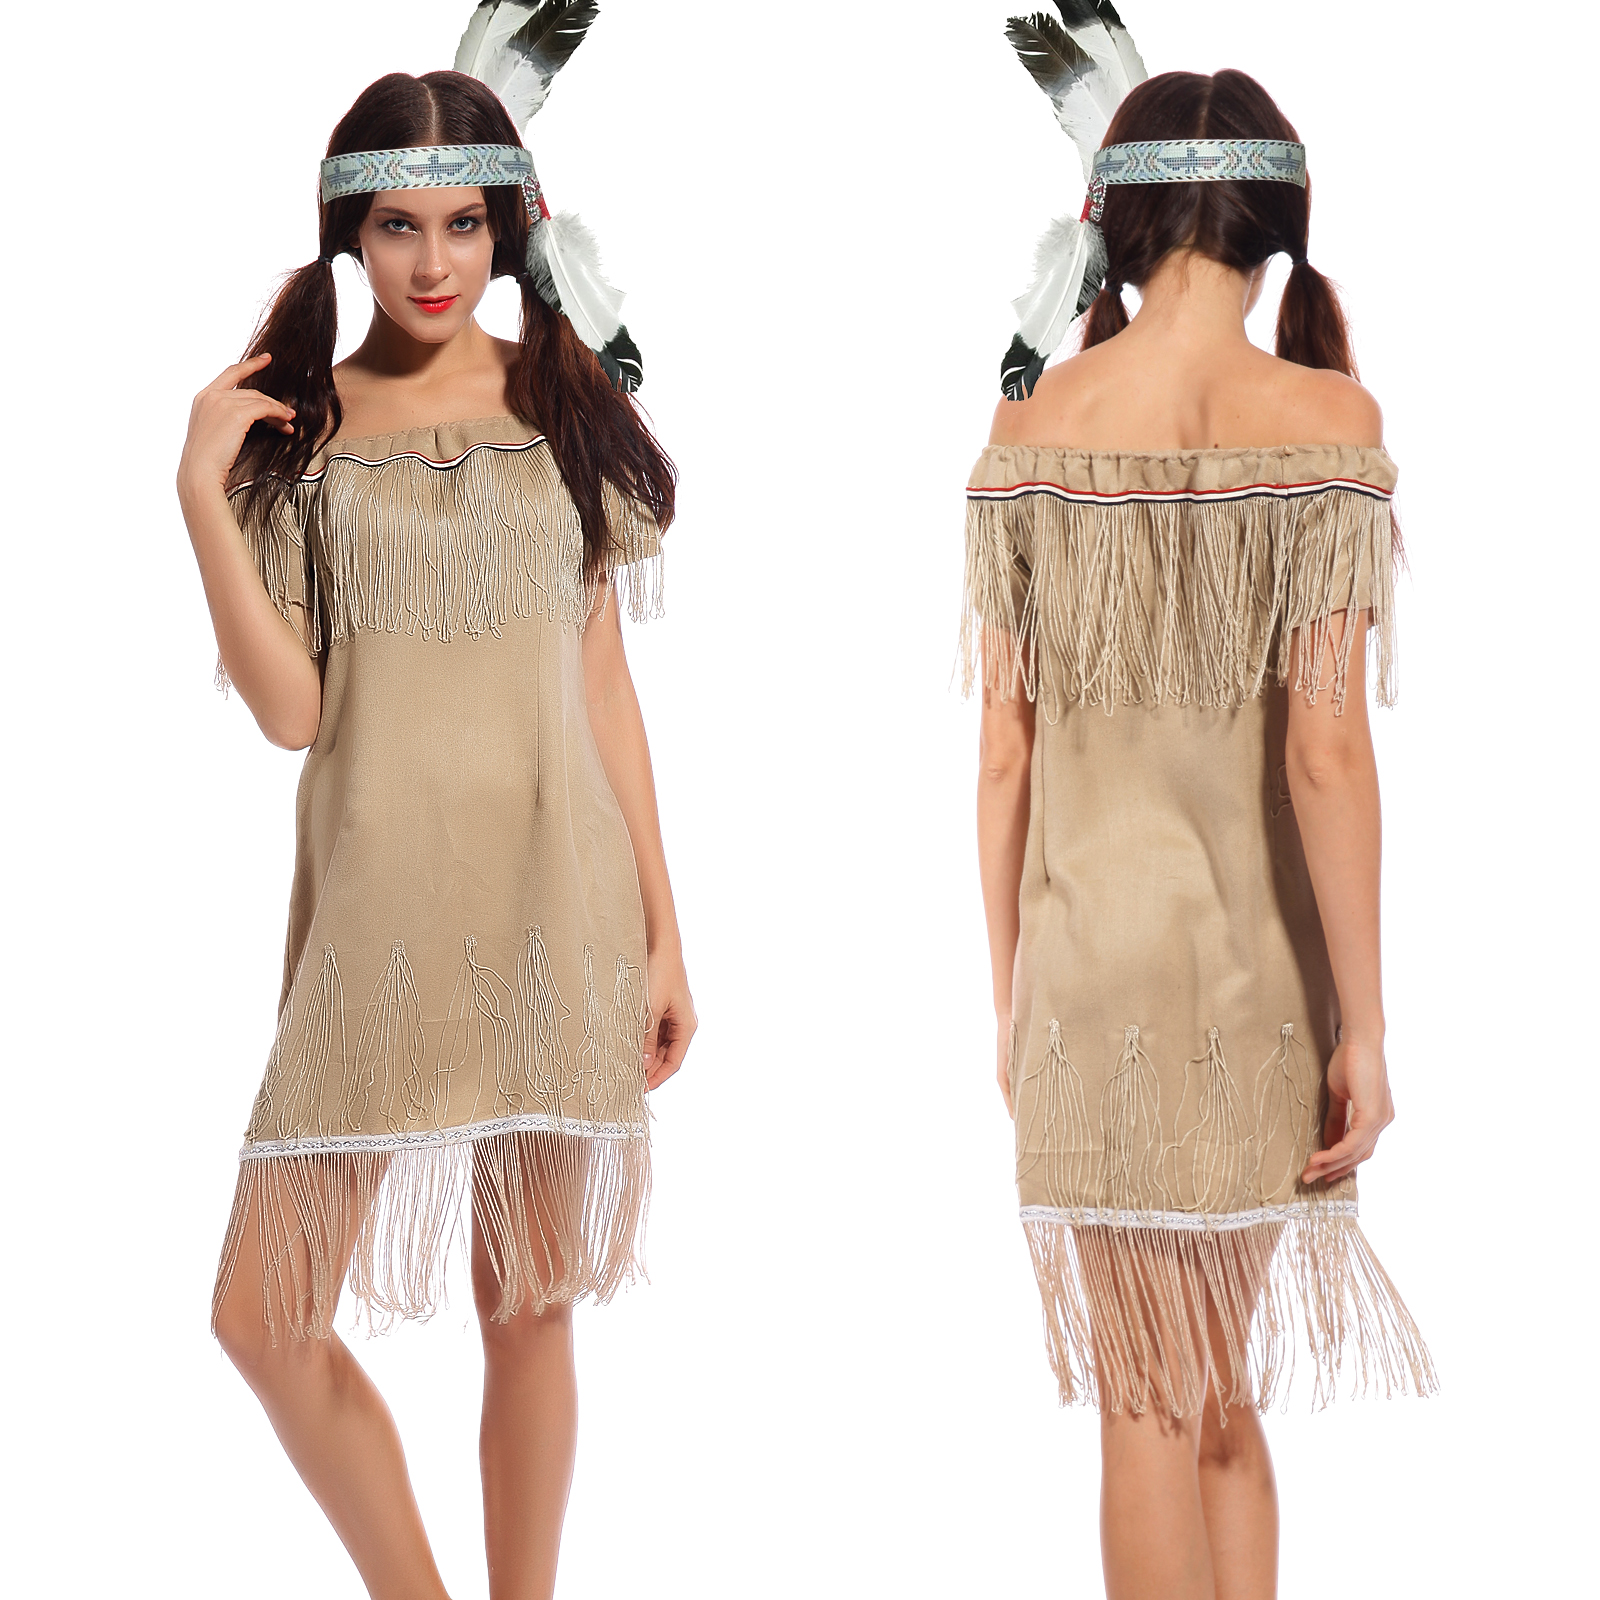 squaw indianerin kost m indianerkleid western fransenkleid fasching karneval ebay. Black Bedroom Furniture Sets. Home Design Ideas